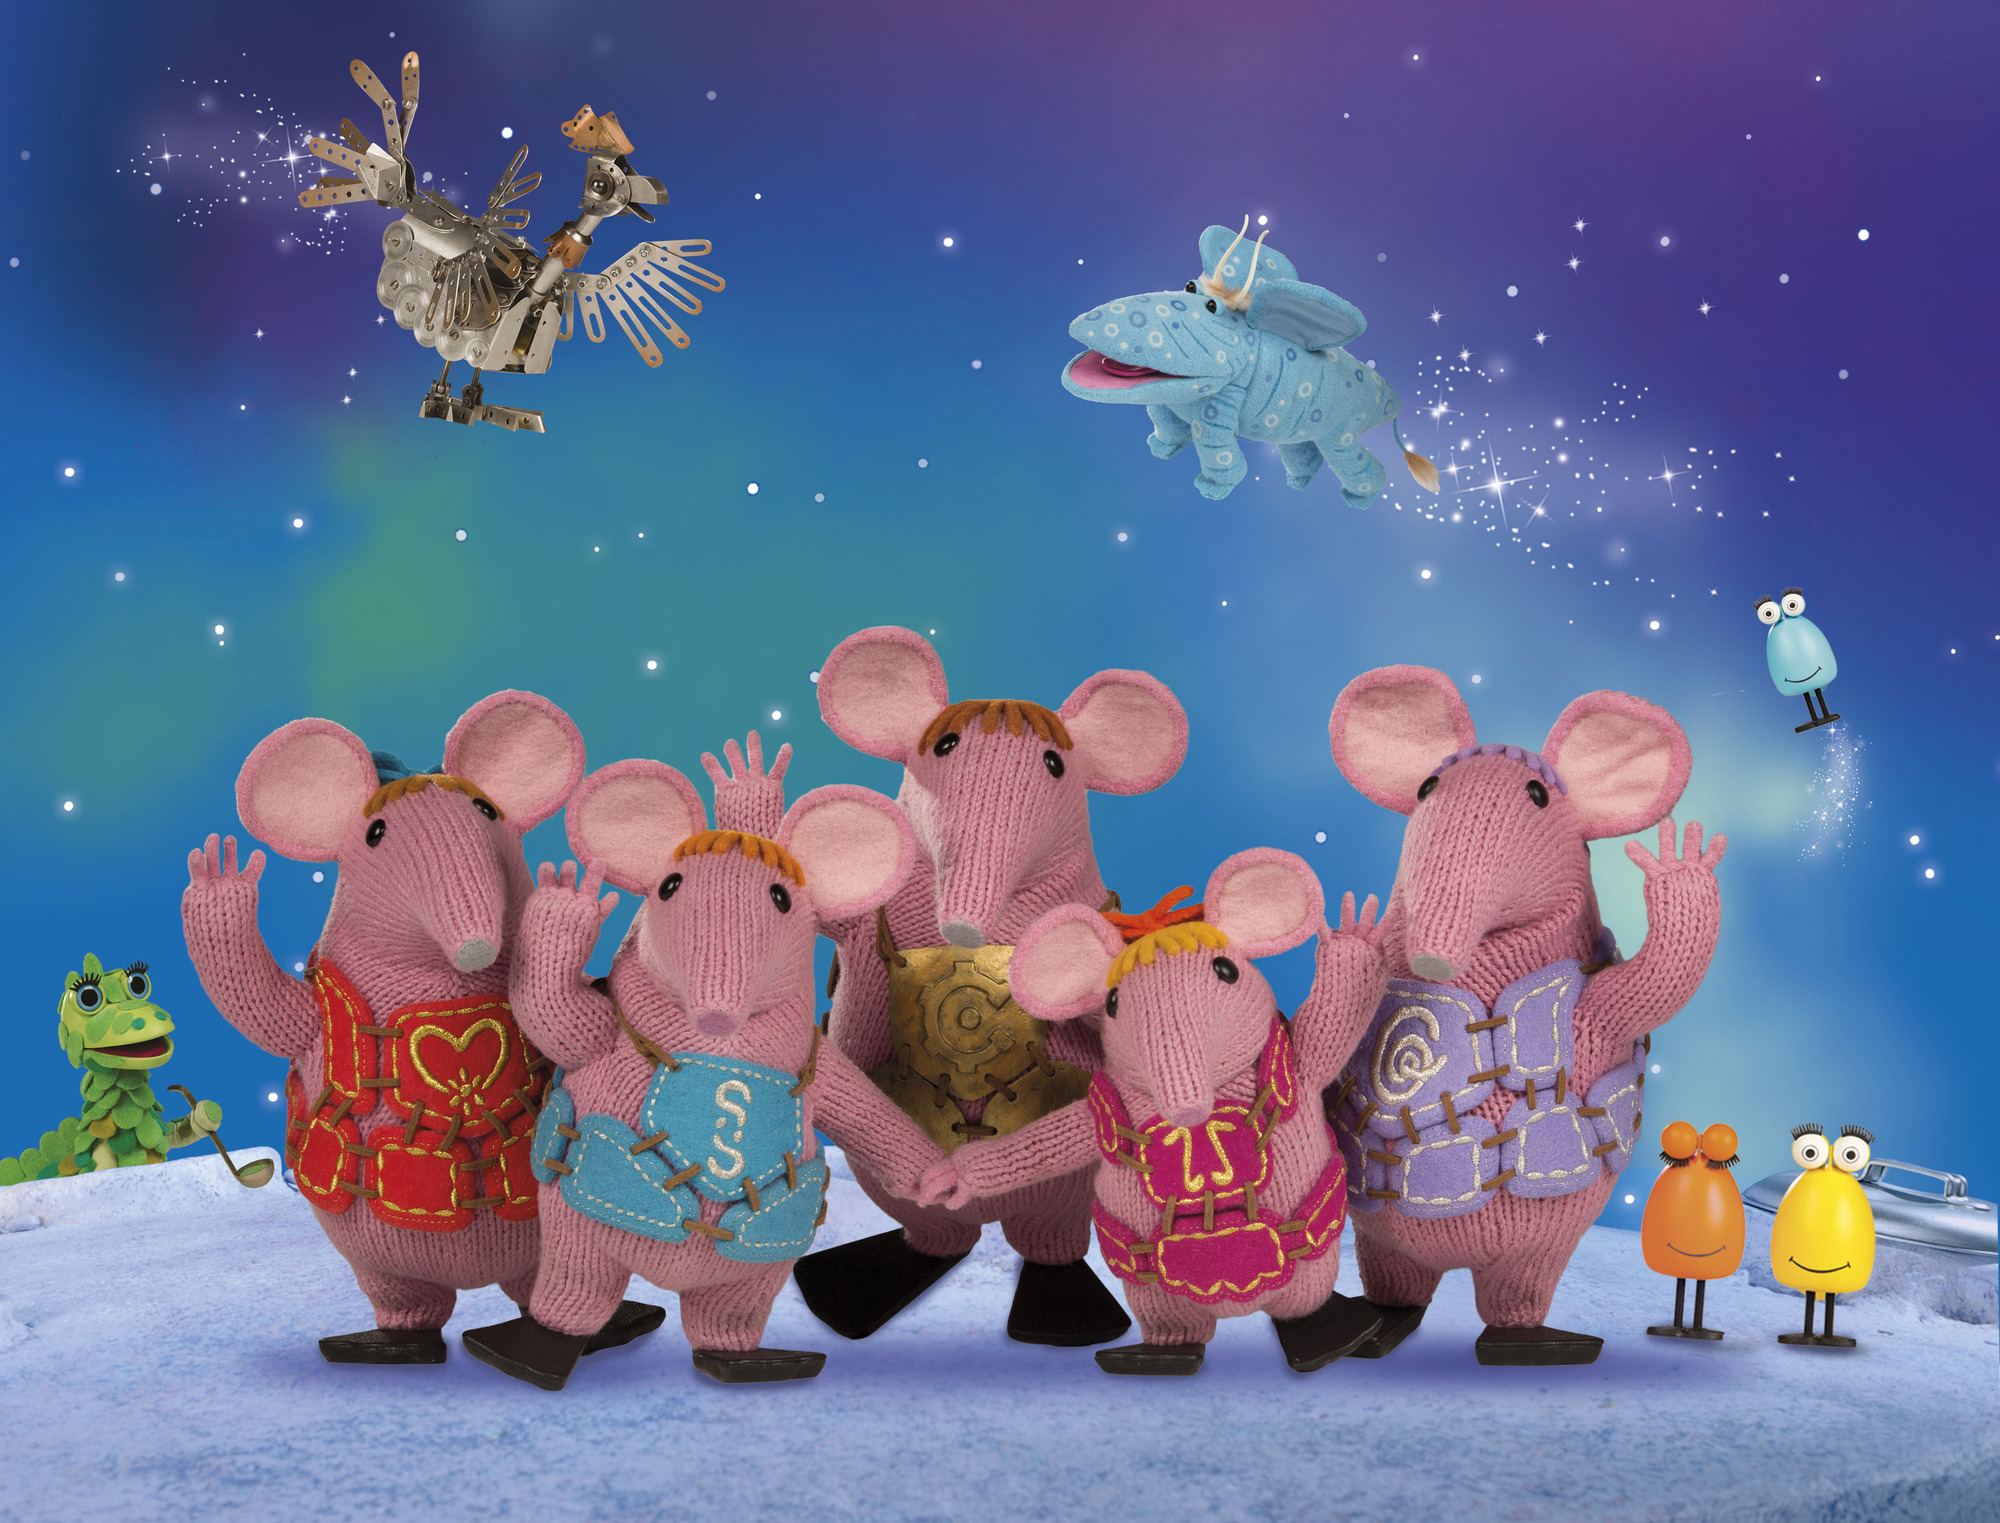 (clockwise from left) Soup Dragon, Iron Chicken, Sky Moo, Froglets, Granny, Tiny, Major, Small, Mother - (C) Coolabi, Smallfilms and Peter Firmin - Photographer: Animation still